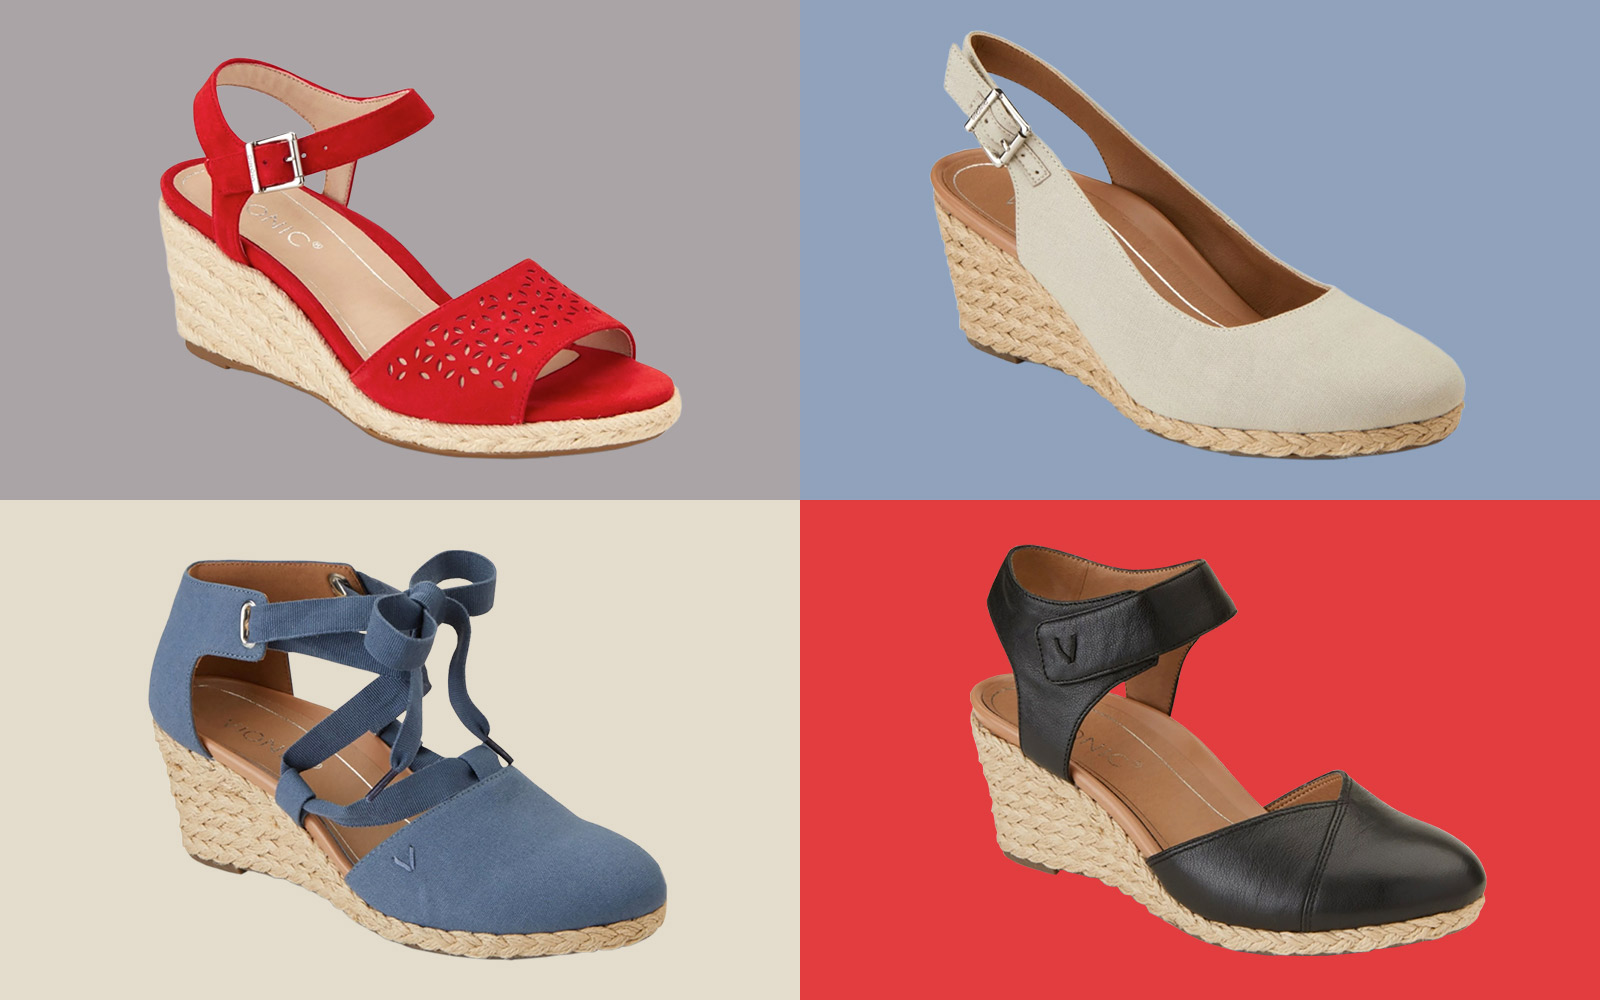 6a5c3b688 This Podiatrist-designed Shoe Brand Just Launched the Cutest Line of  Espadrilles